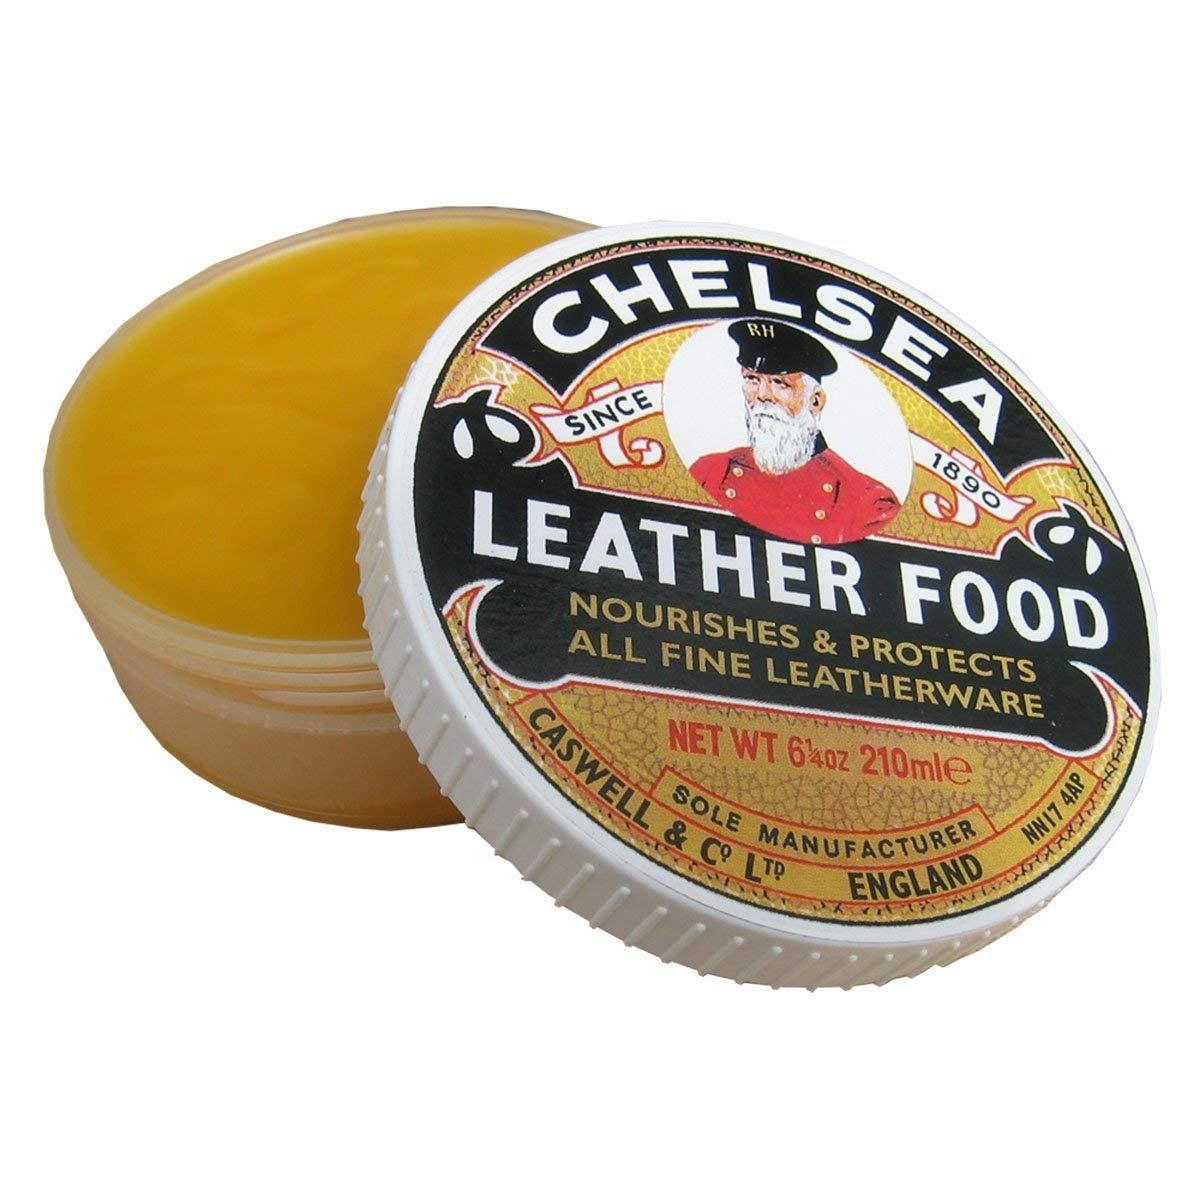 Chelsea Leather Food - 210ml